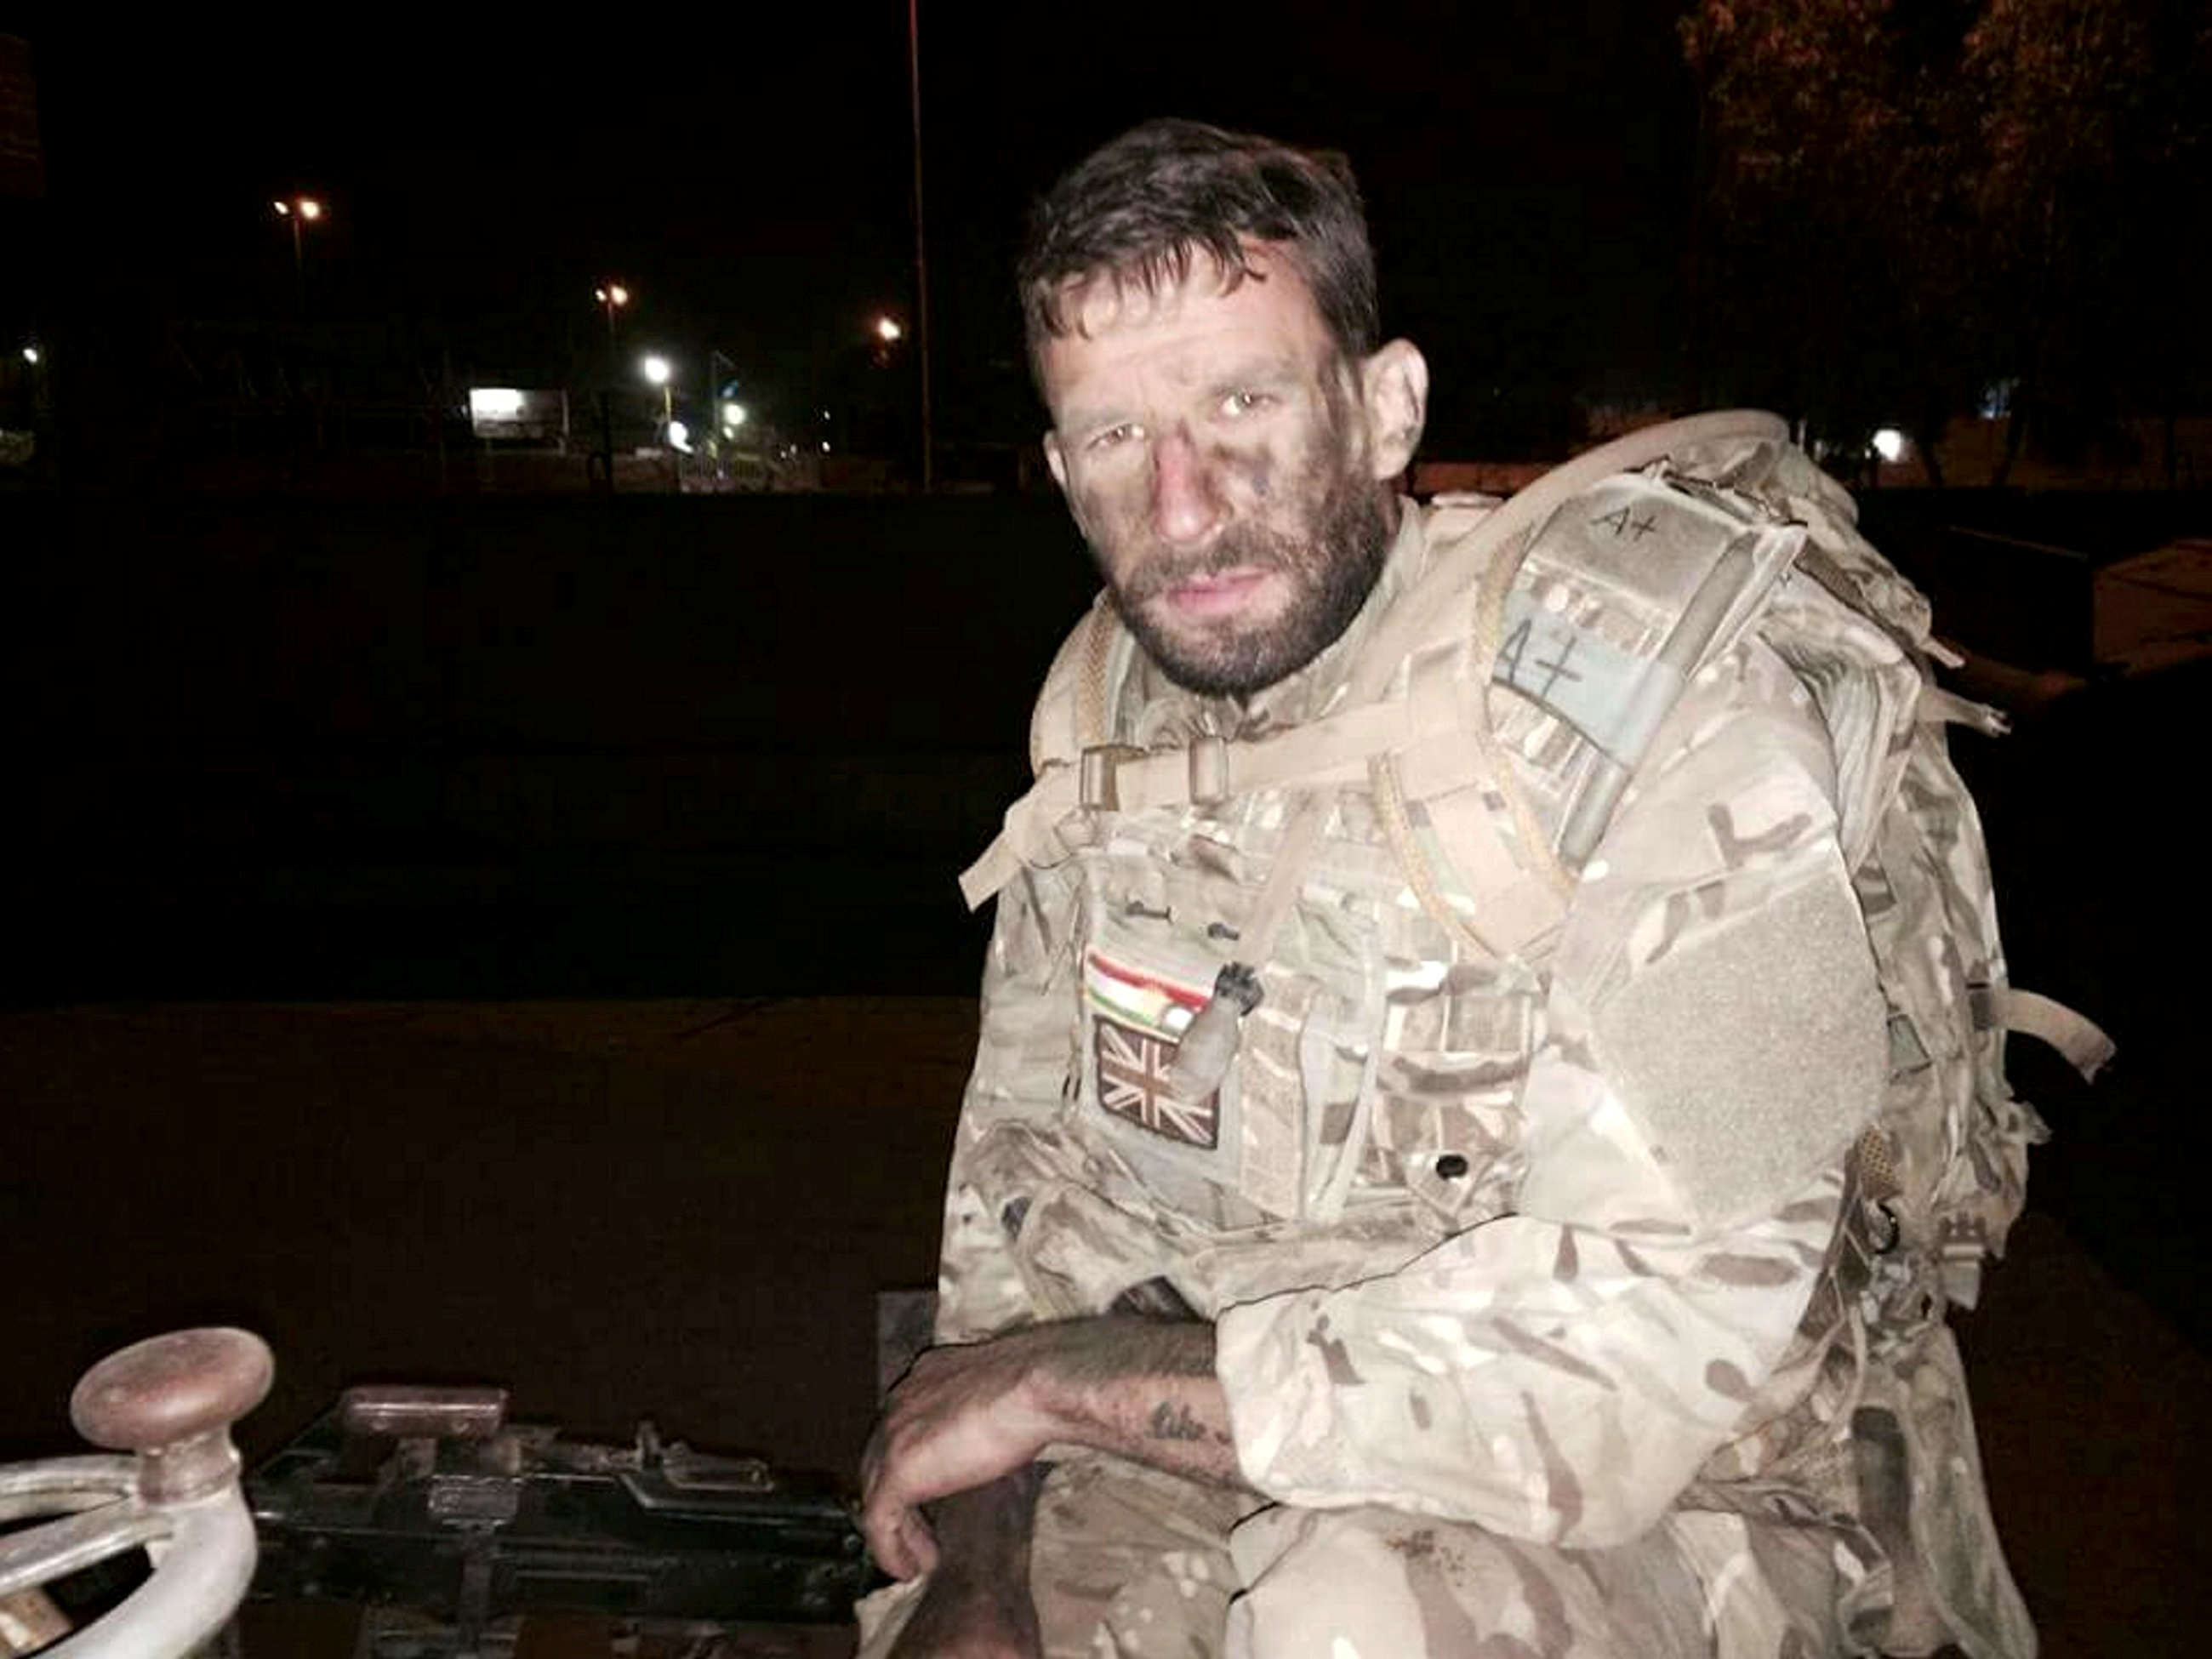 Story Of Ex Soldier Arrested When He Returned To UK From Fighting ISIS SWNS ISIS SOLDIER 04